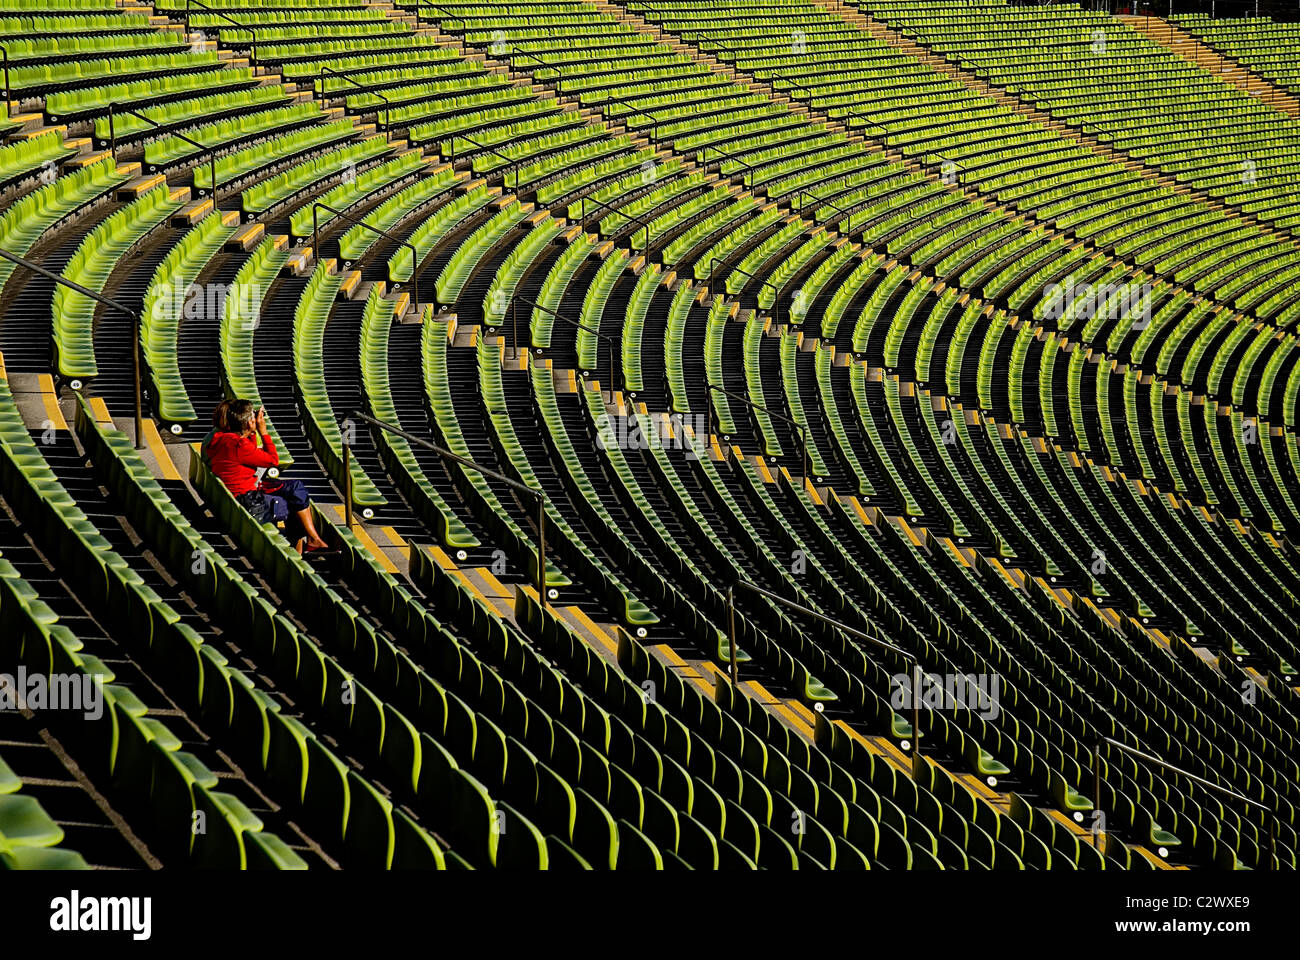 Germany Bavaria Munich Olympic Stadium curved section of bright green seating with single person seated. - Stock Image